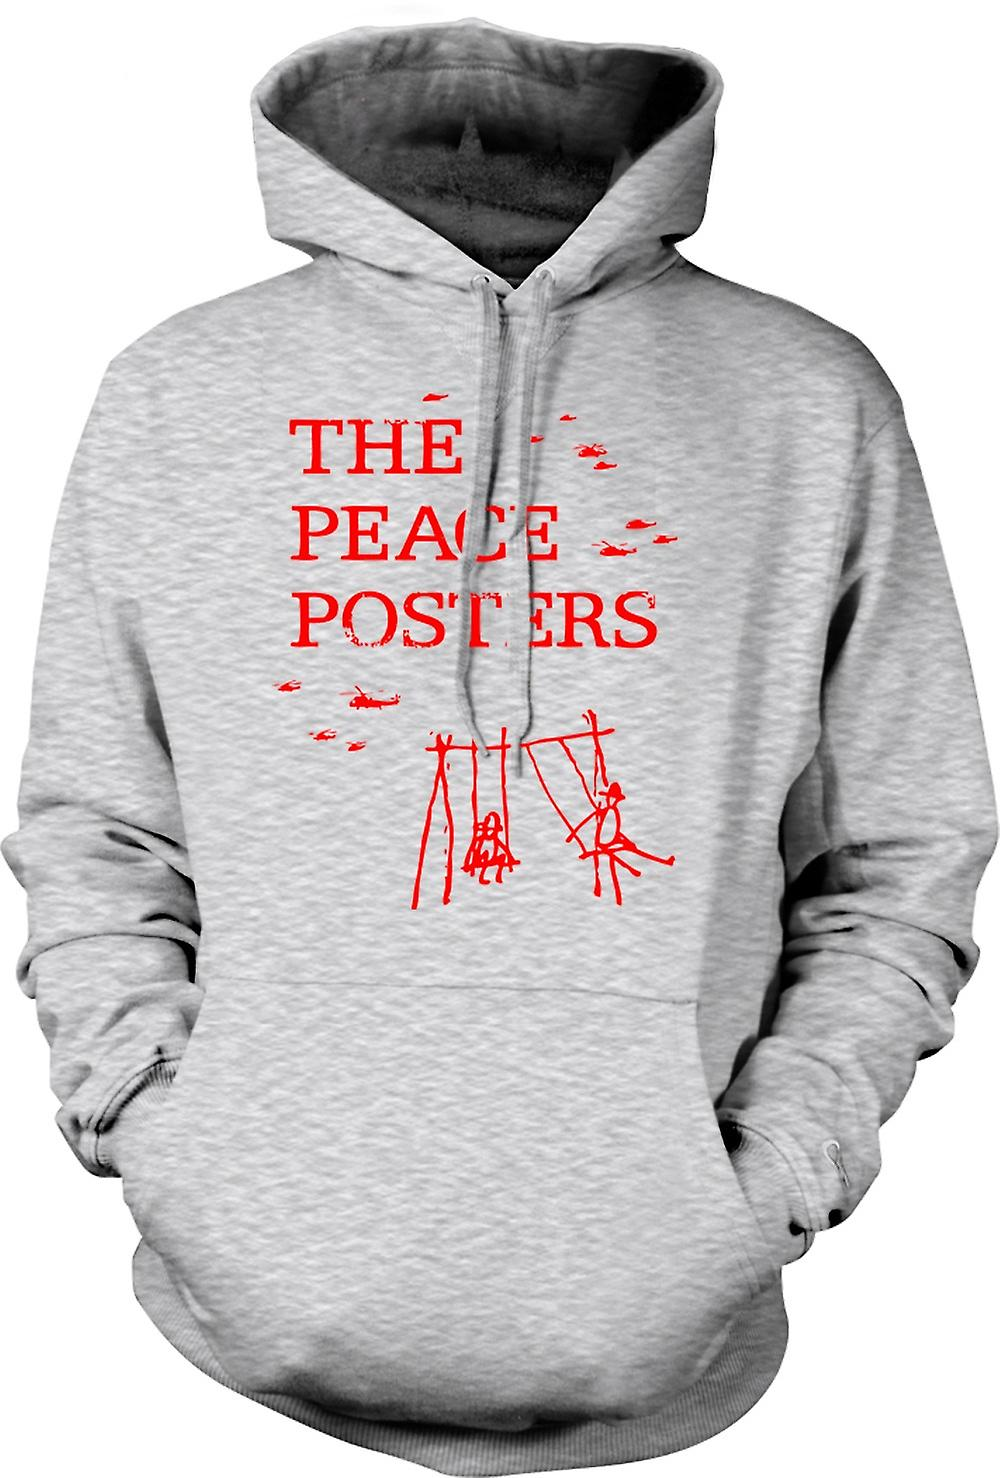 Mens Hoodie - The Peace Posters - Anti War